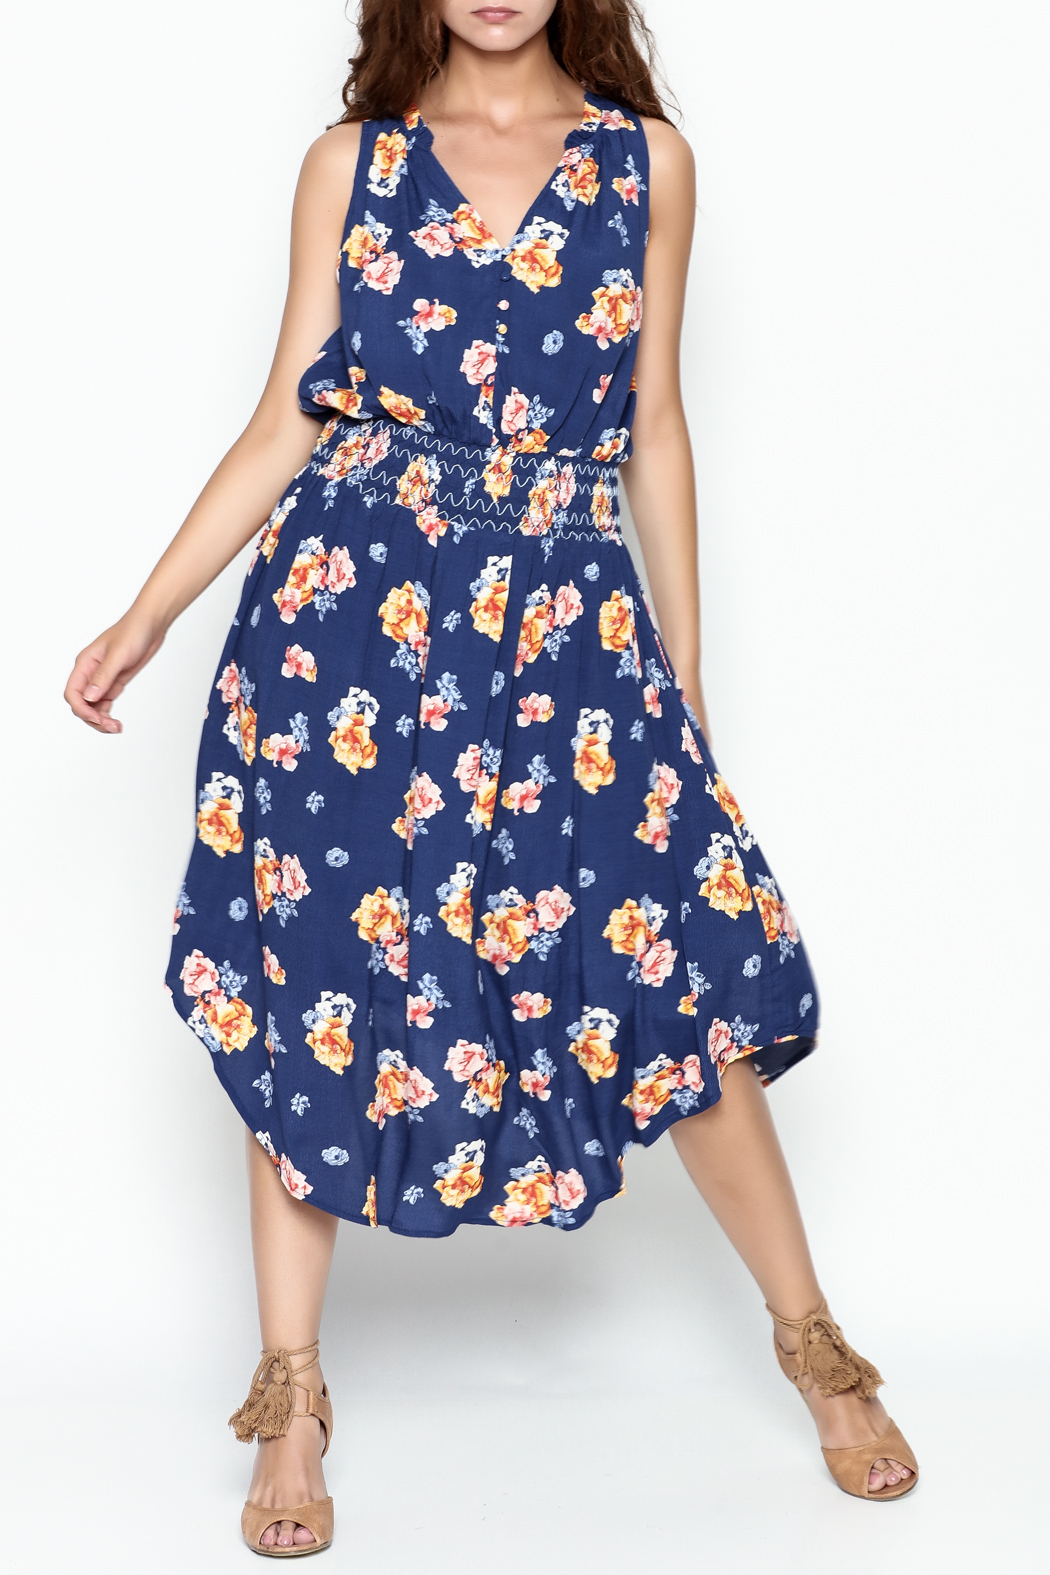 Current Air Bright Floral Dress - Front Cropped Image